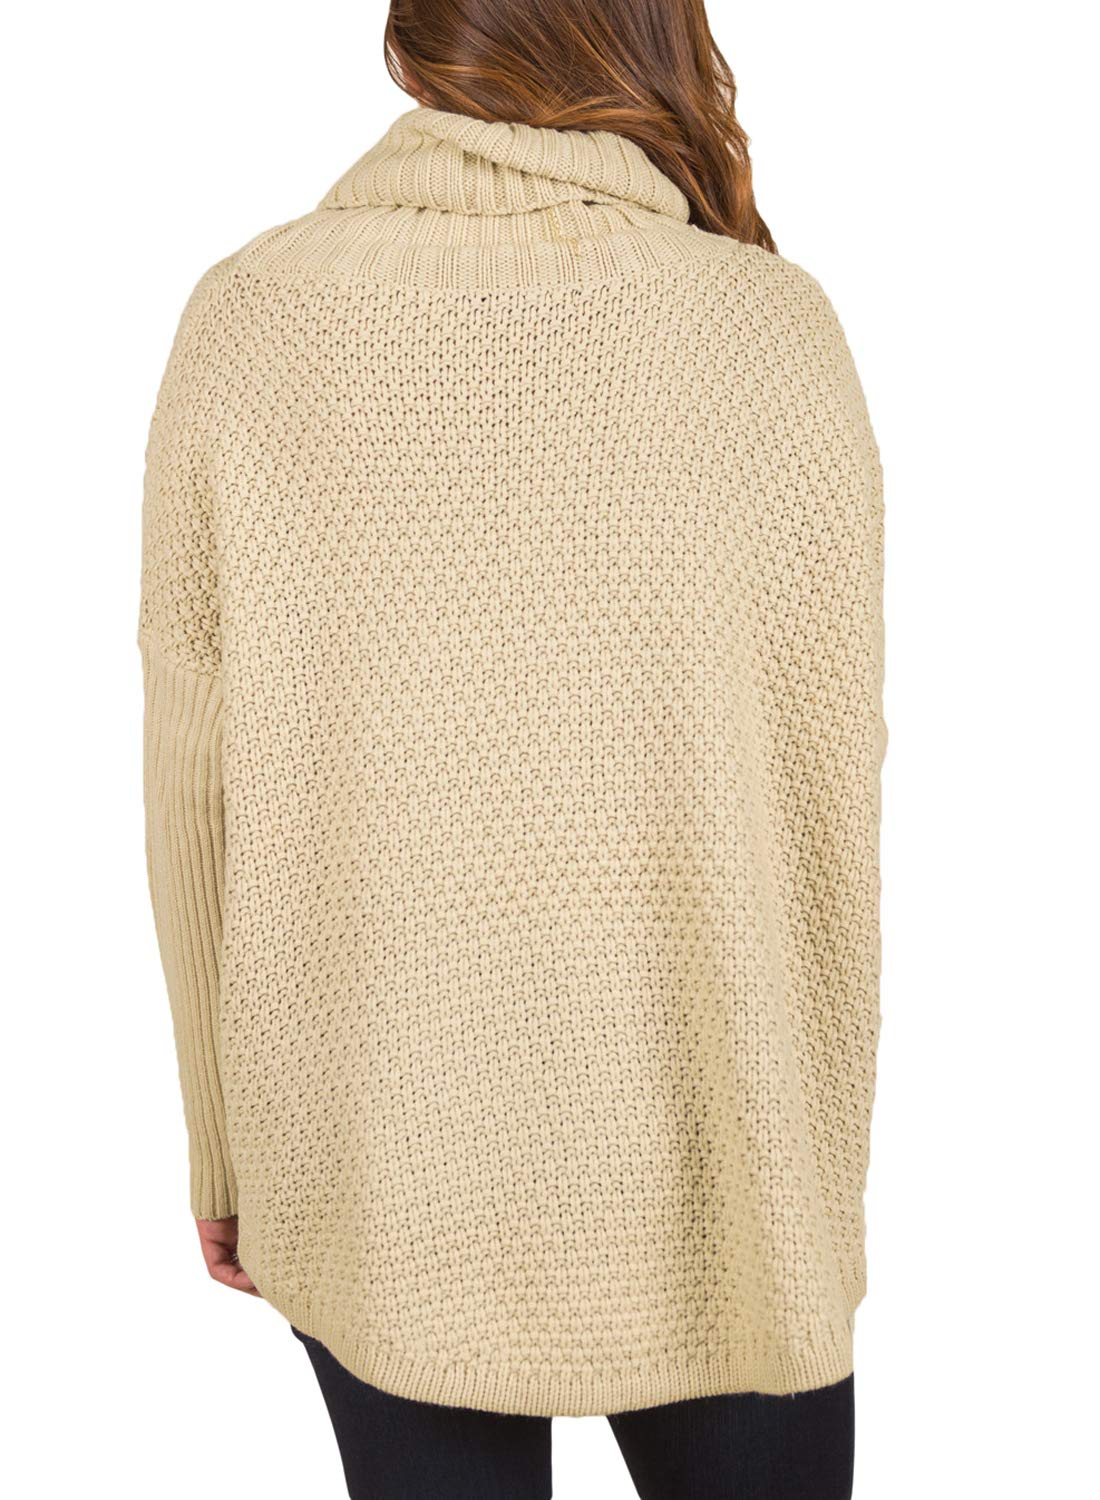 ACKKIA Women's Casual Turtleneck Batwing Long Sleeve Rib Knit Pullover Sweater Champagne Size M by ACKKIA (Image #2)